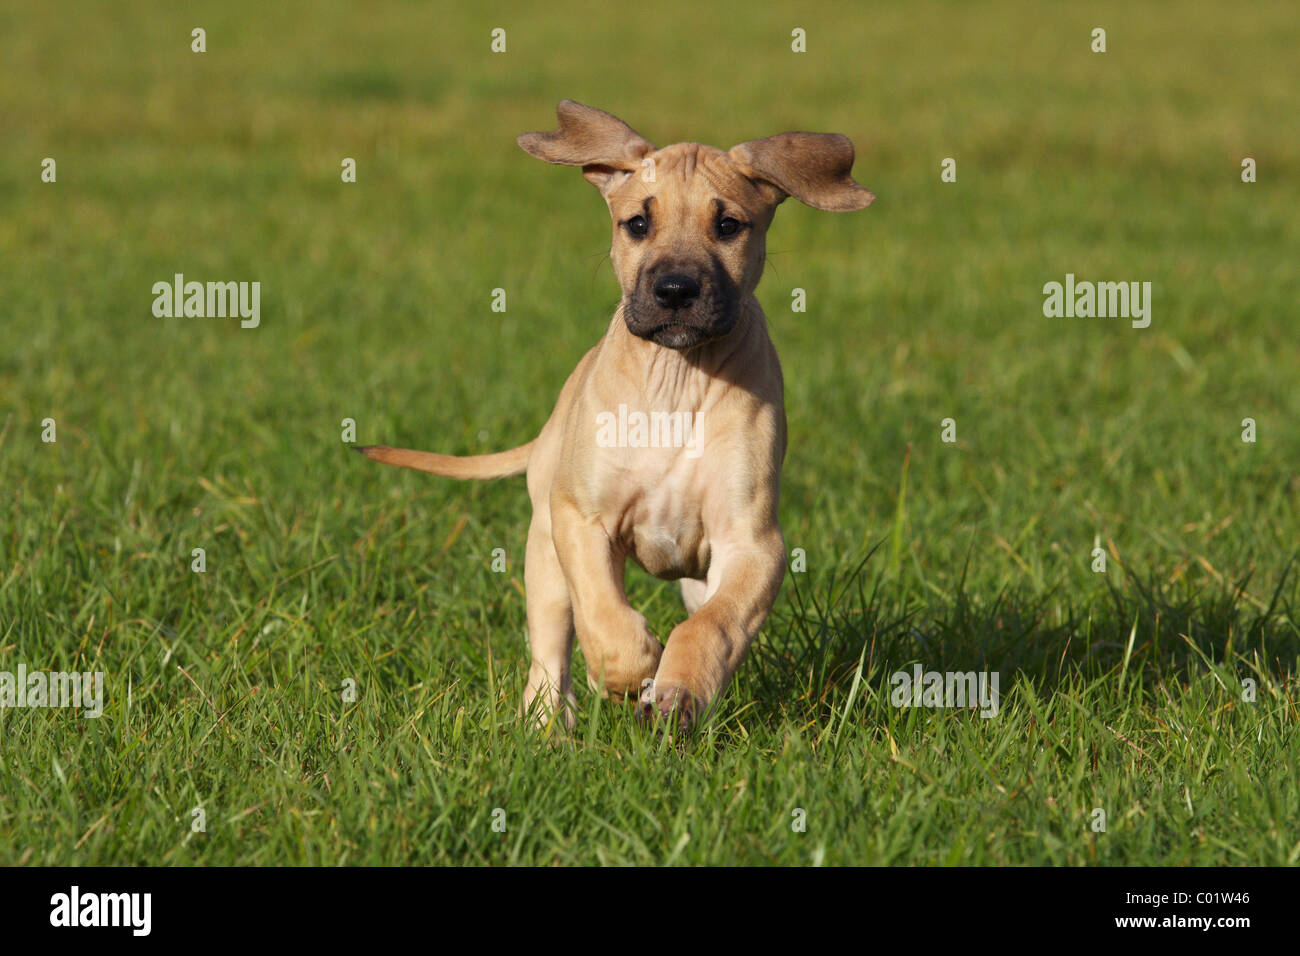 great dane puppy stock photos great dane puppy stock images alamy